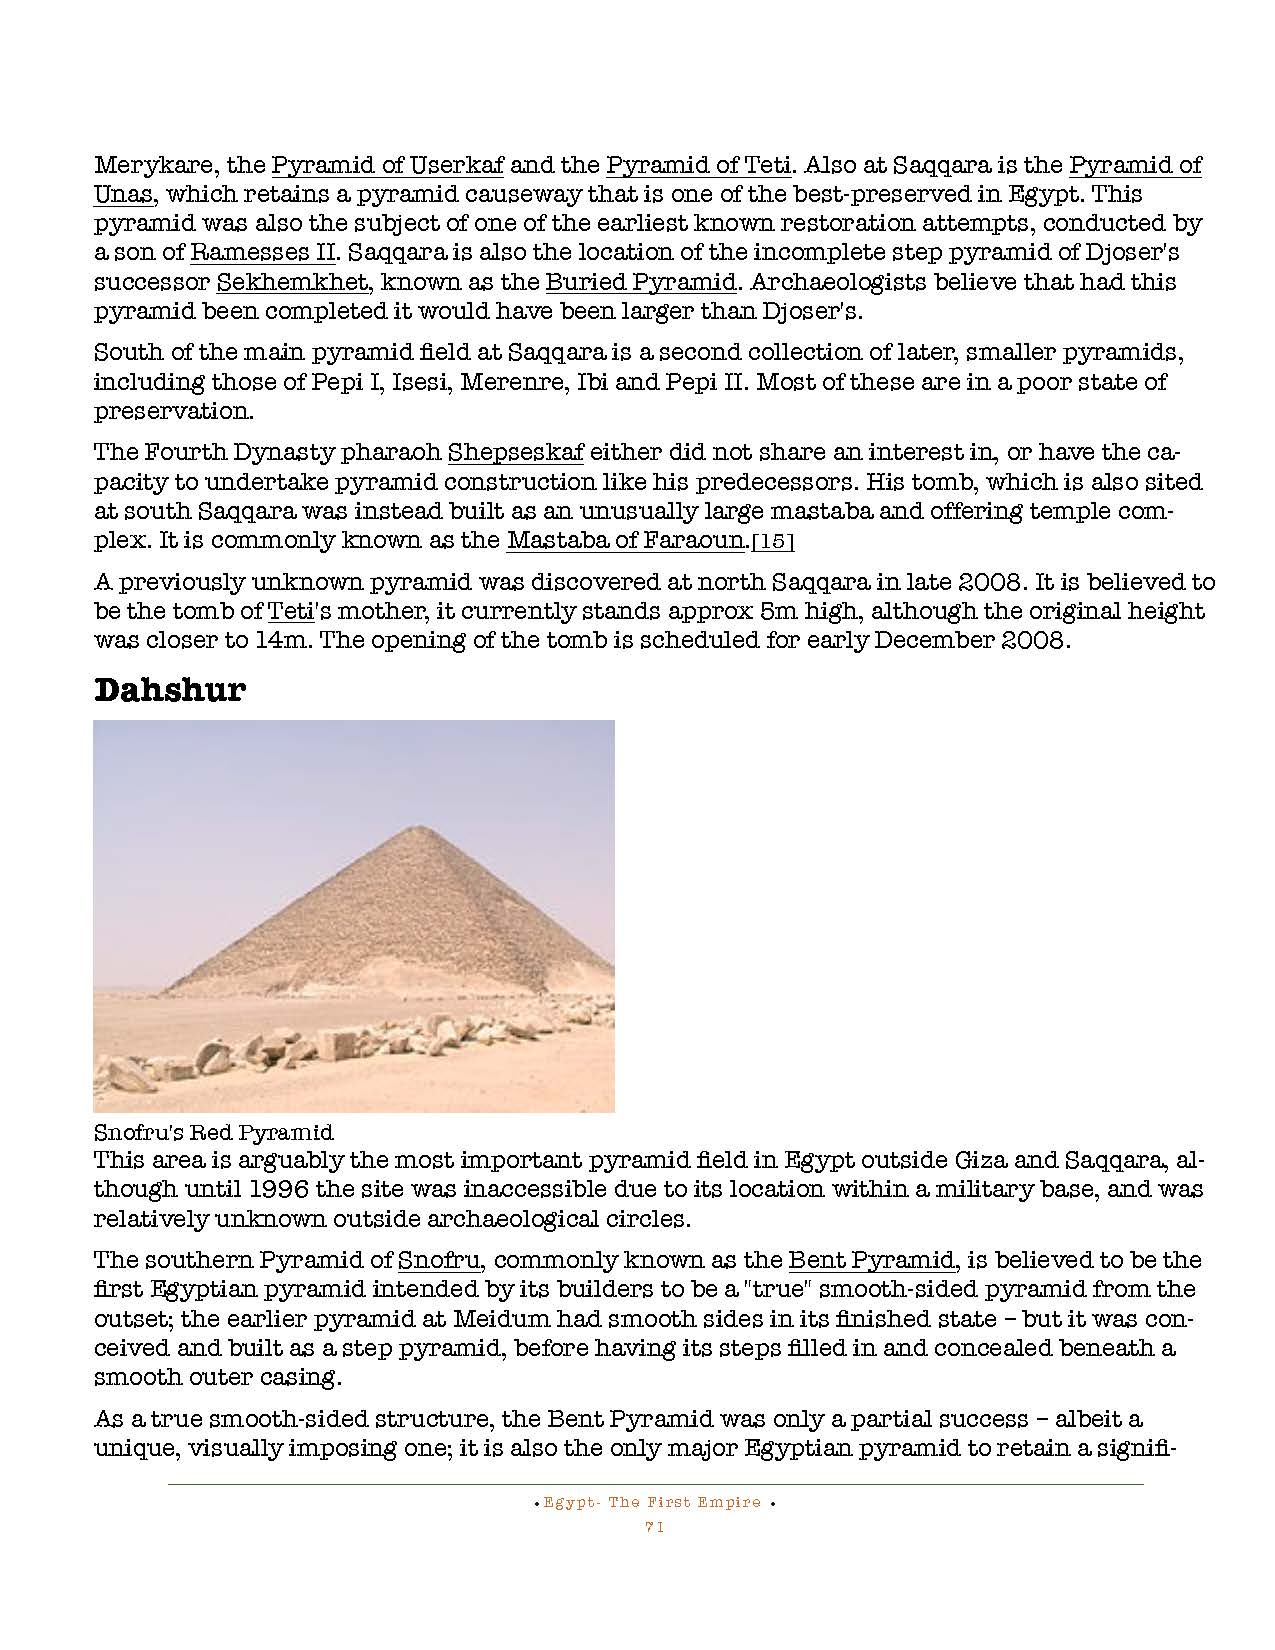 HOCE- Egypt  (First Empire) Notes_Page_071.jpg